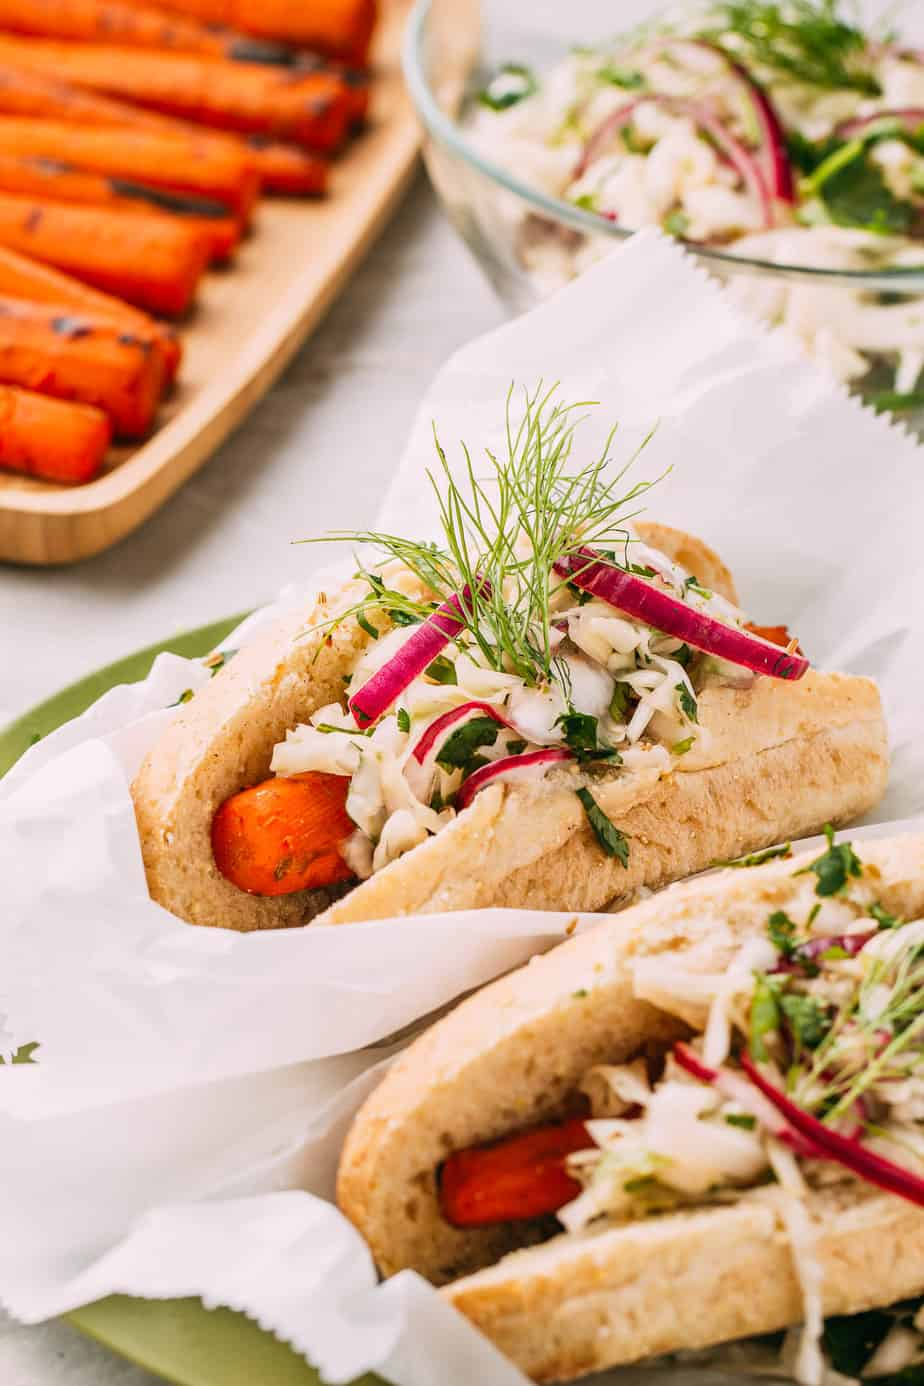 vegan carrot dogs in a hot dog bun topped with sprouts and white sauce